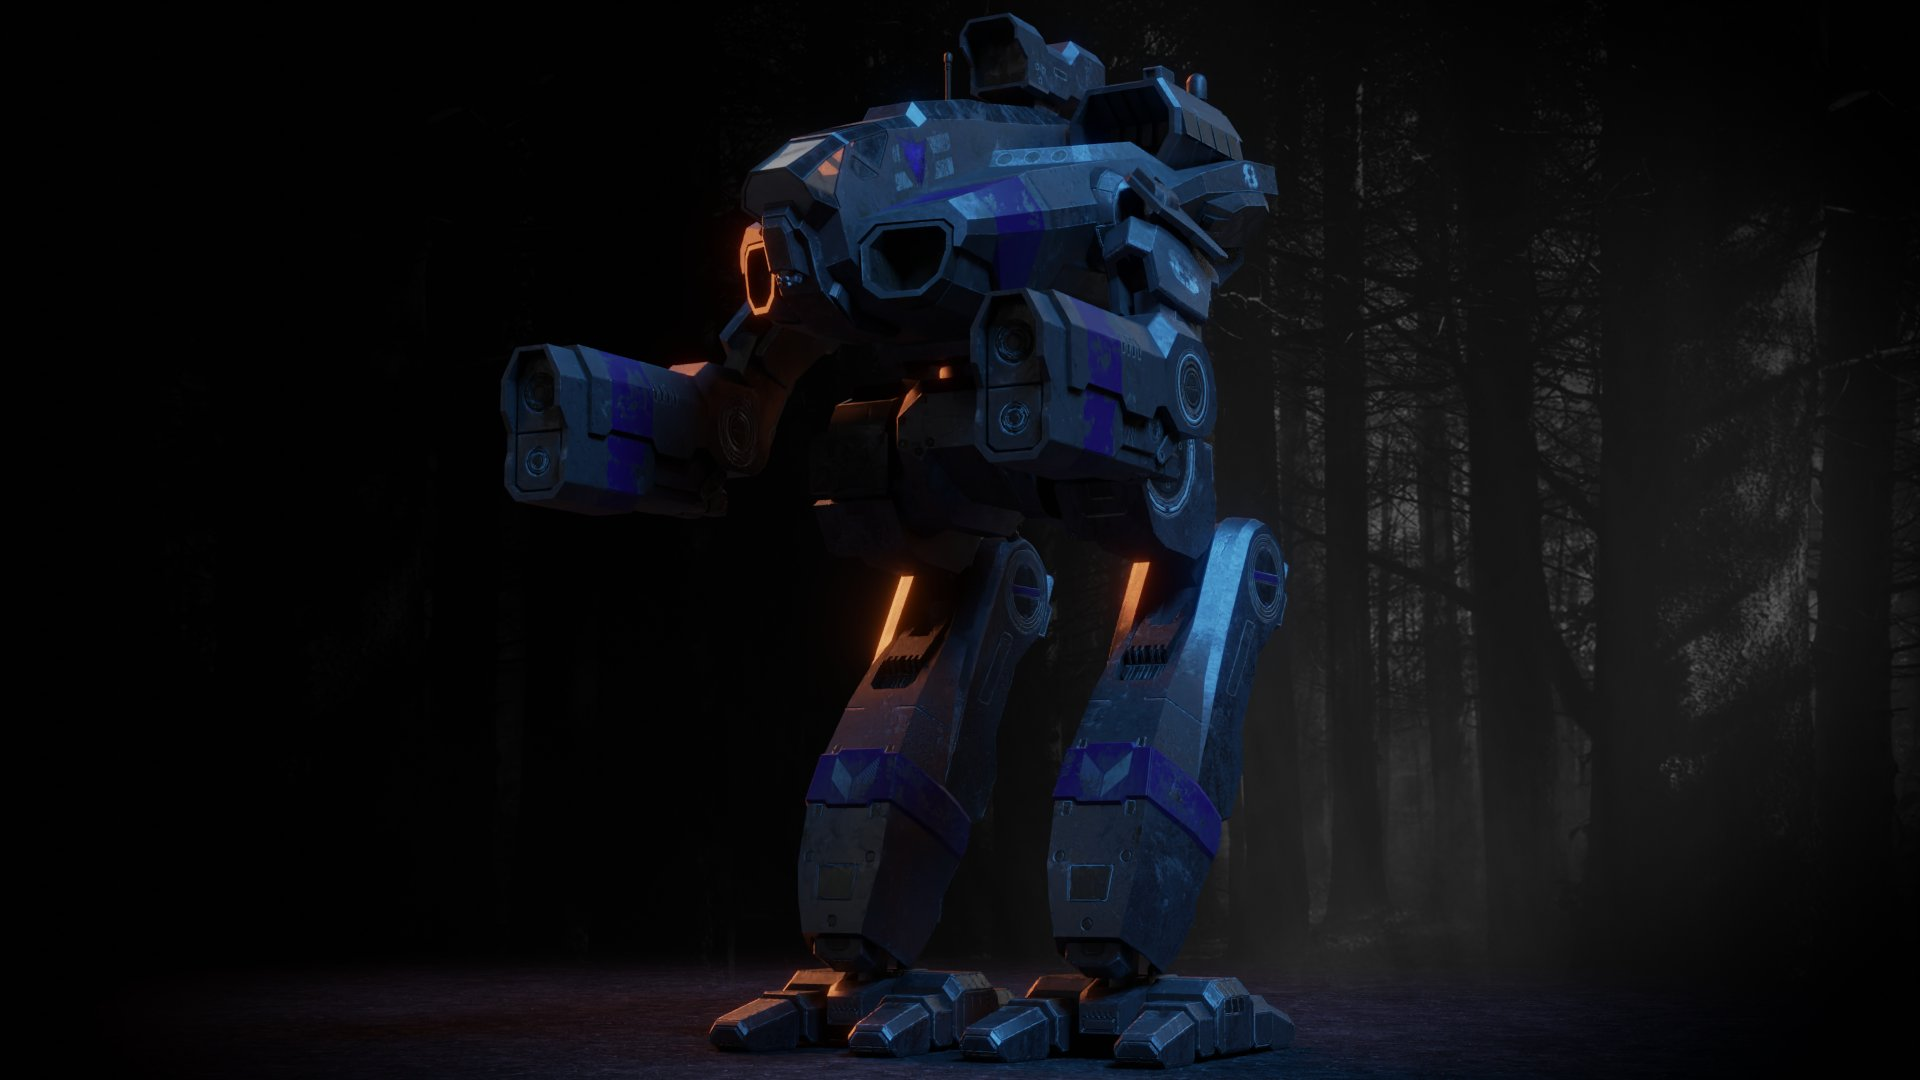 Marauder render, courtesy artist Nay Nay